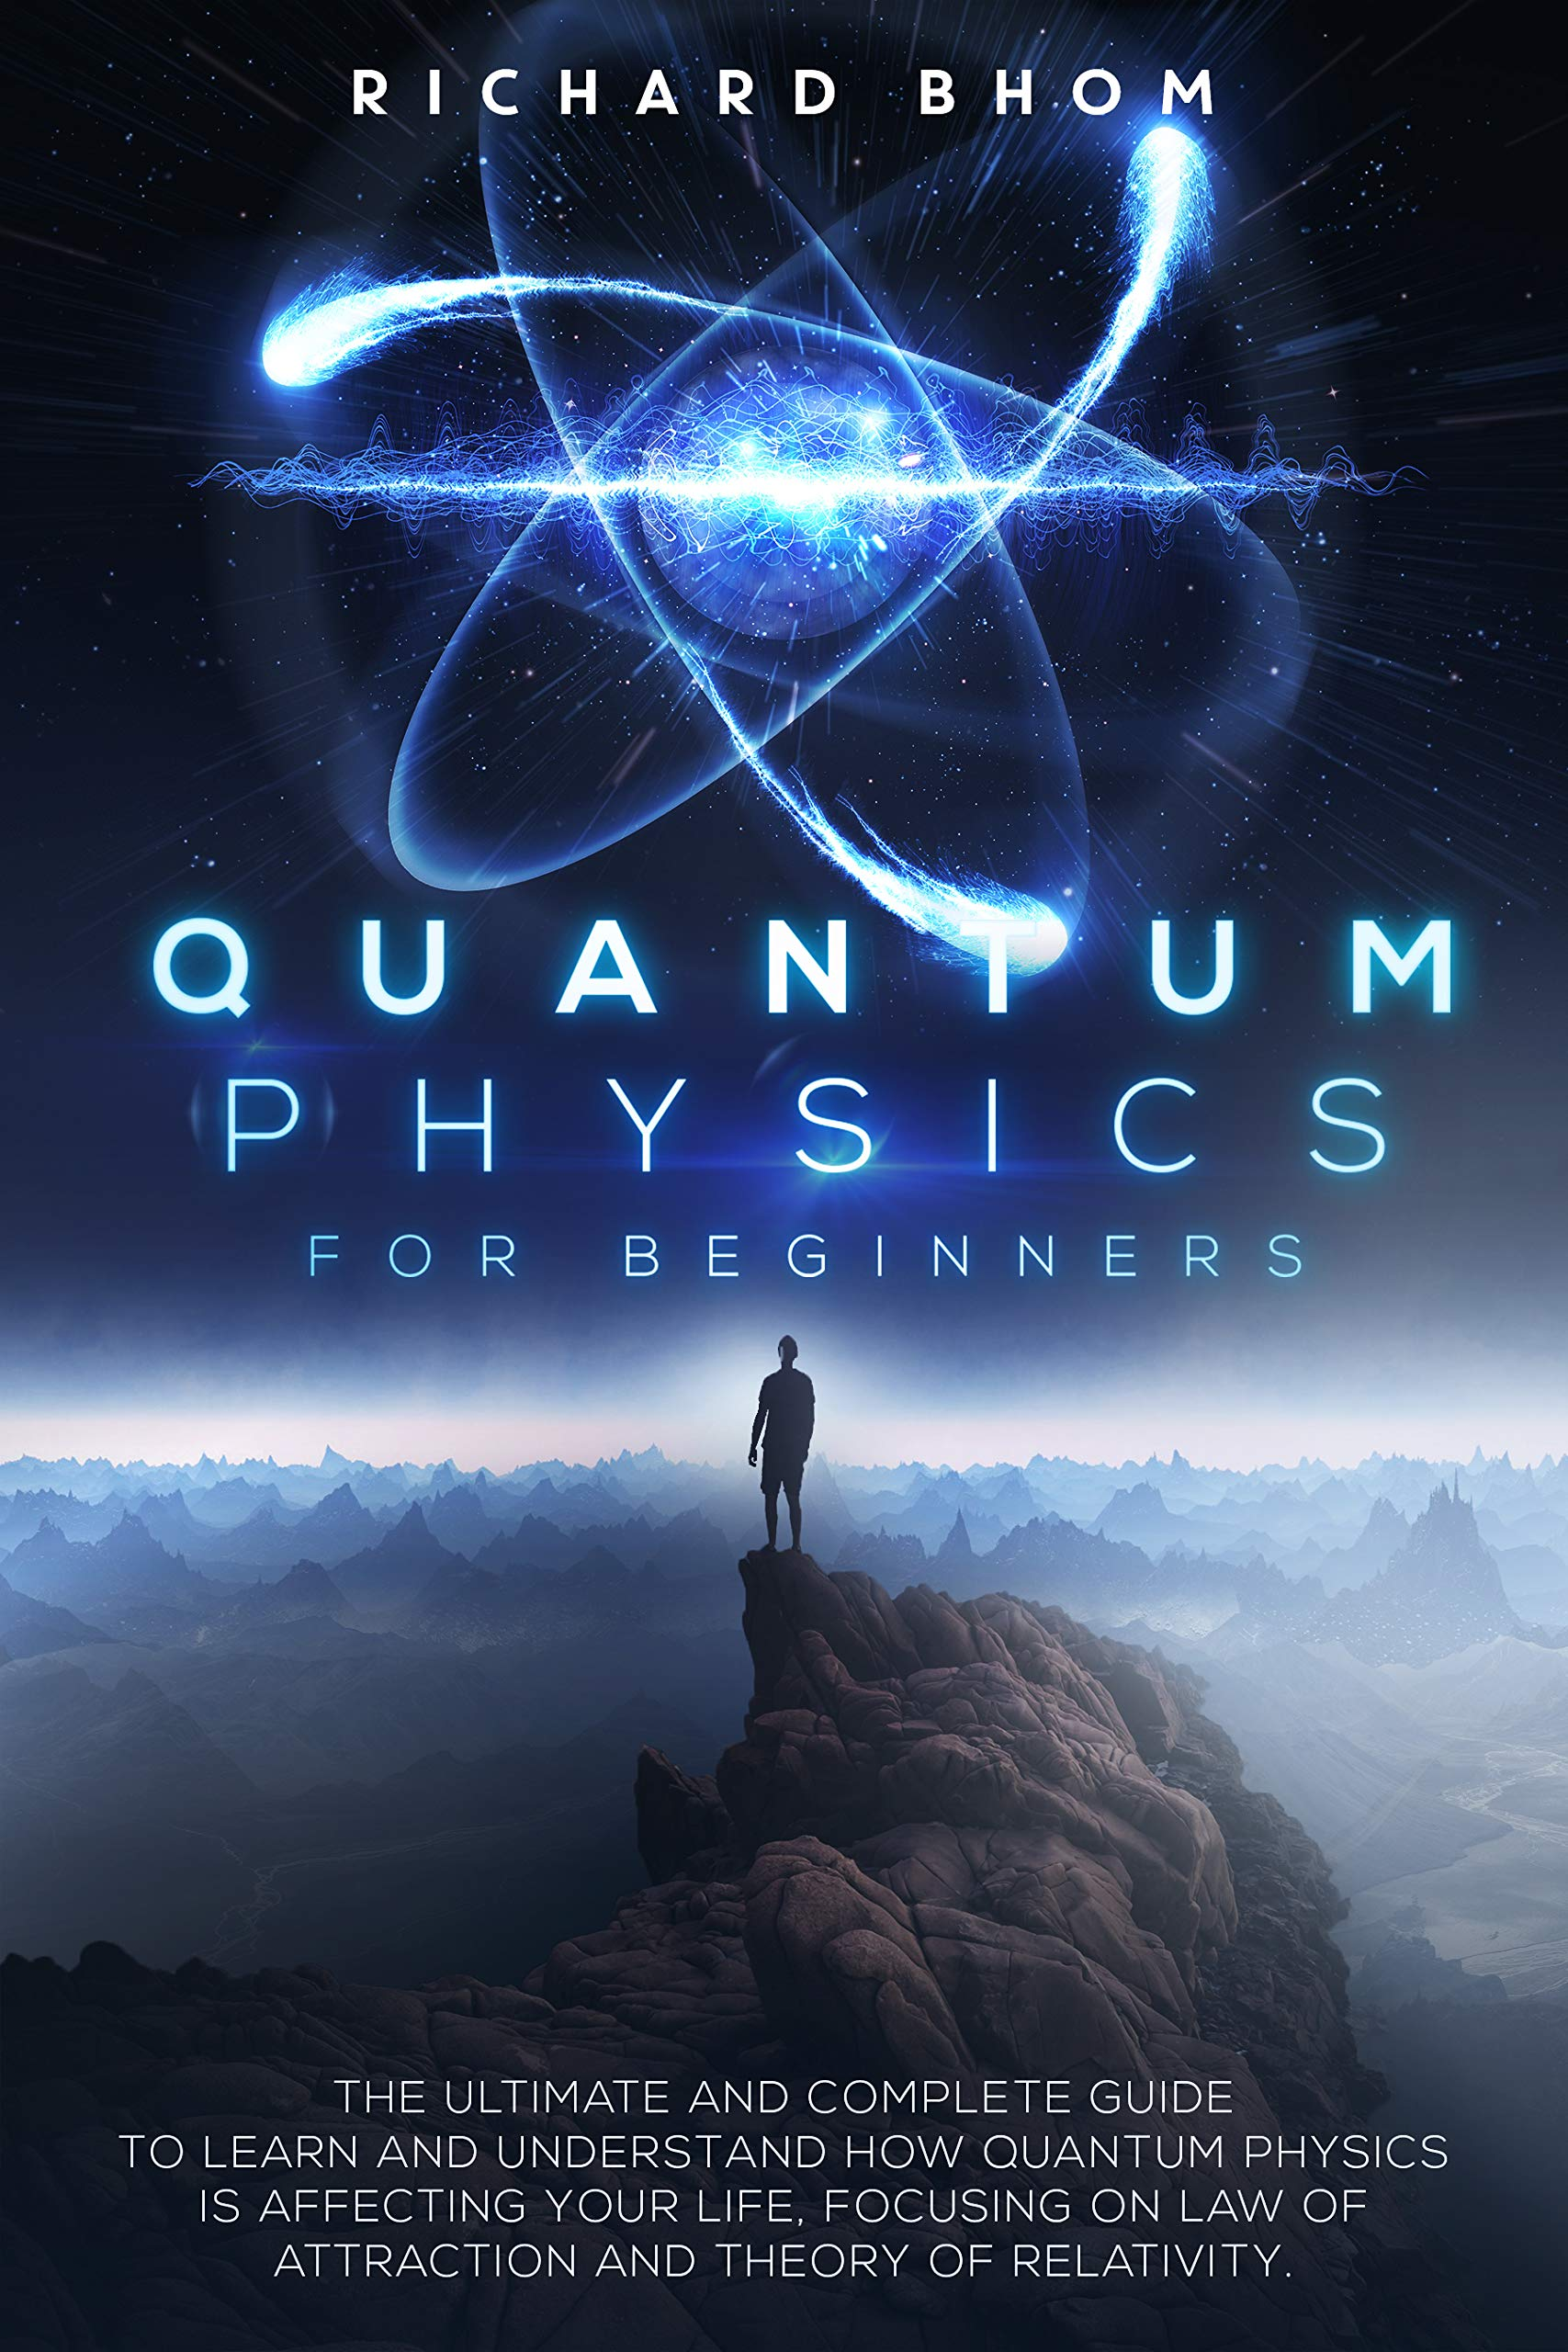 QUANTUM PHYSICS FOR BEGINNERS: The Ultimate and Complete Guide to Learn and Understand How Quantum Physics is Affecting Your Life, Focusing On Law of Attraction And Theory Of Relativity.